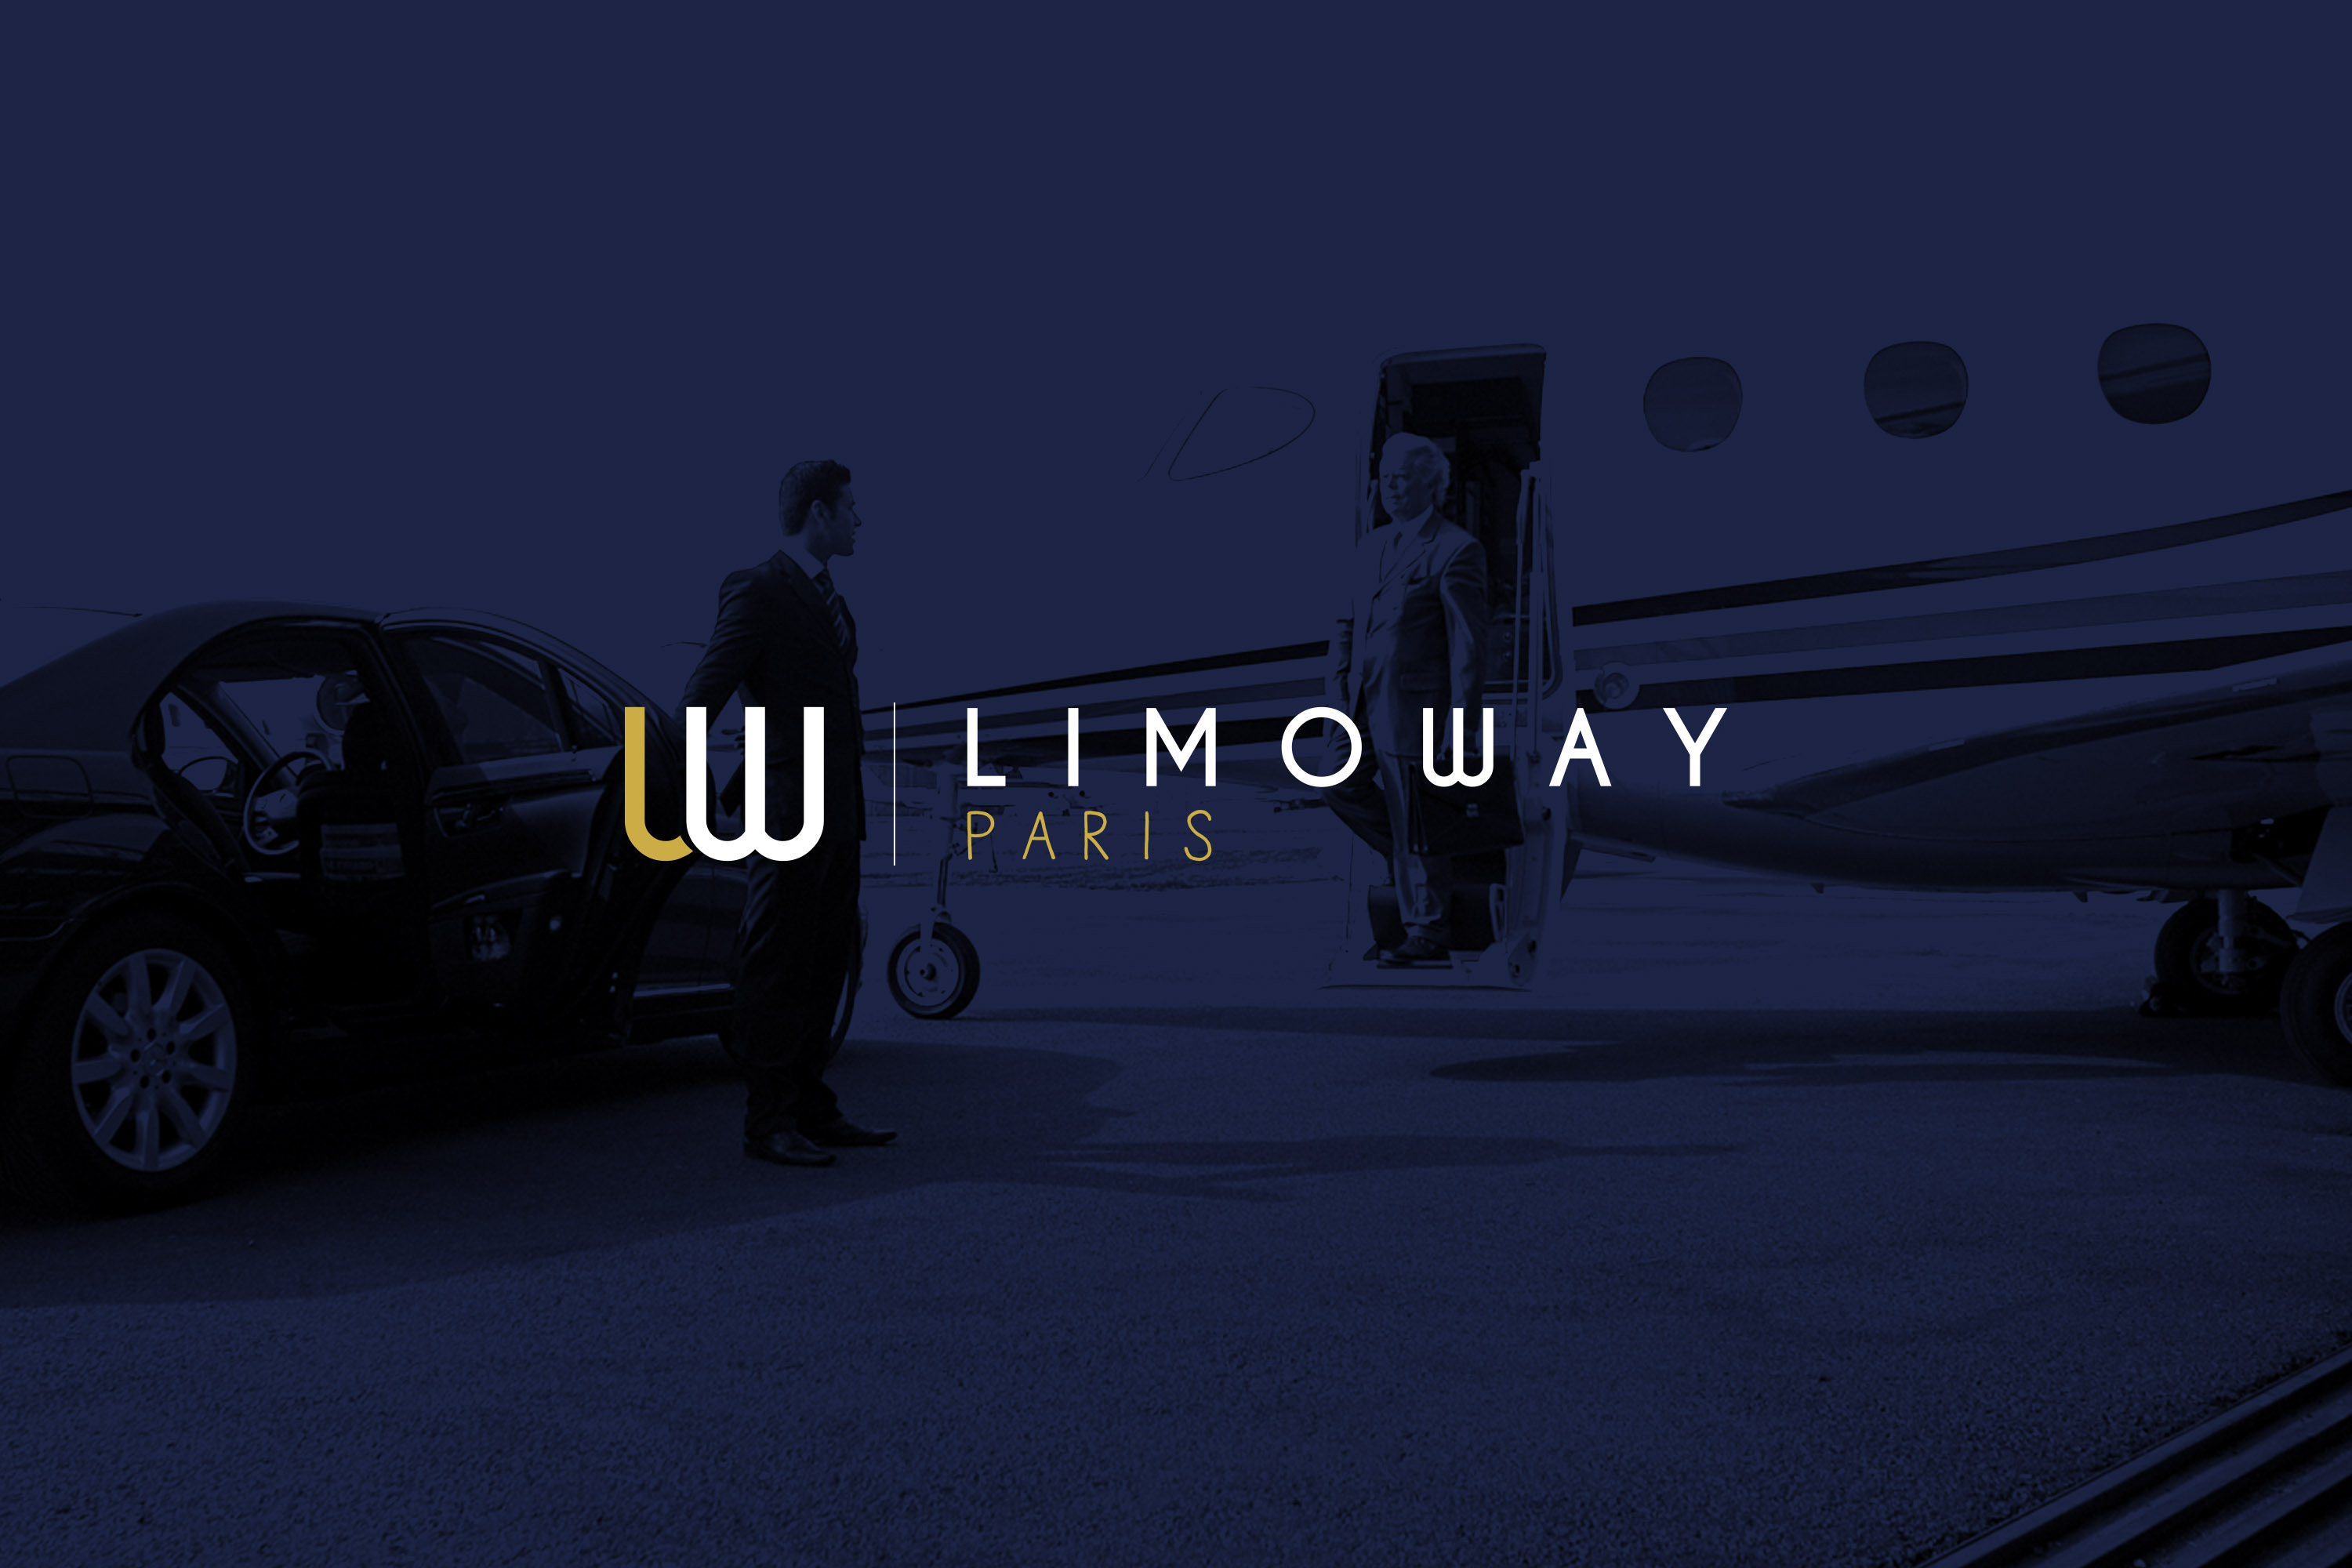 Limoway